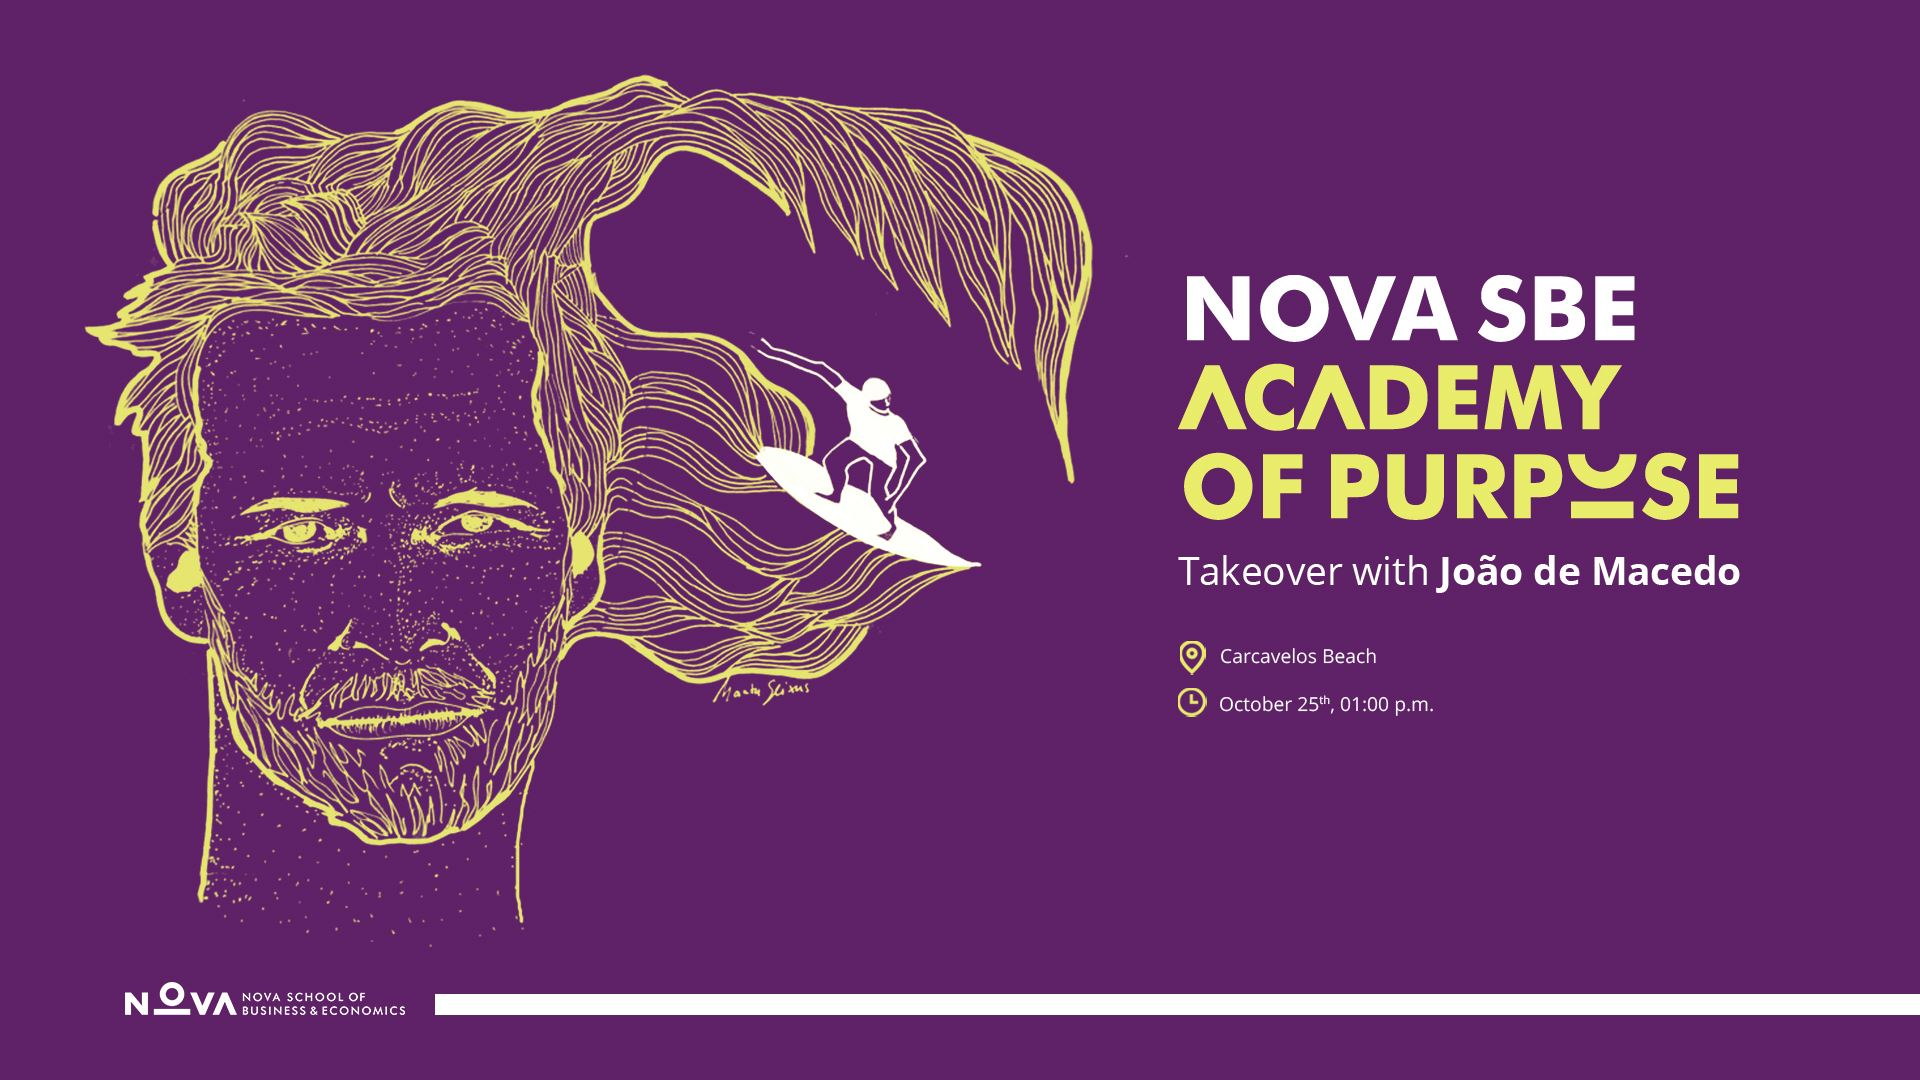 Academy of Purpose - 3rd Takeover with João de Macedo